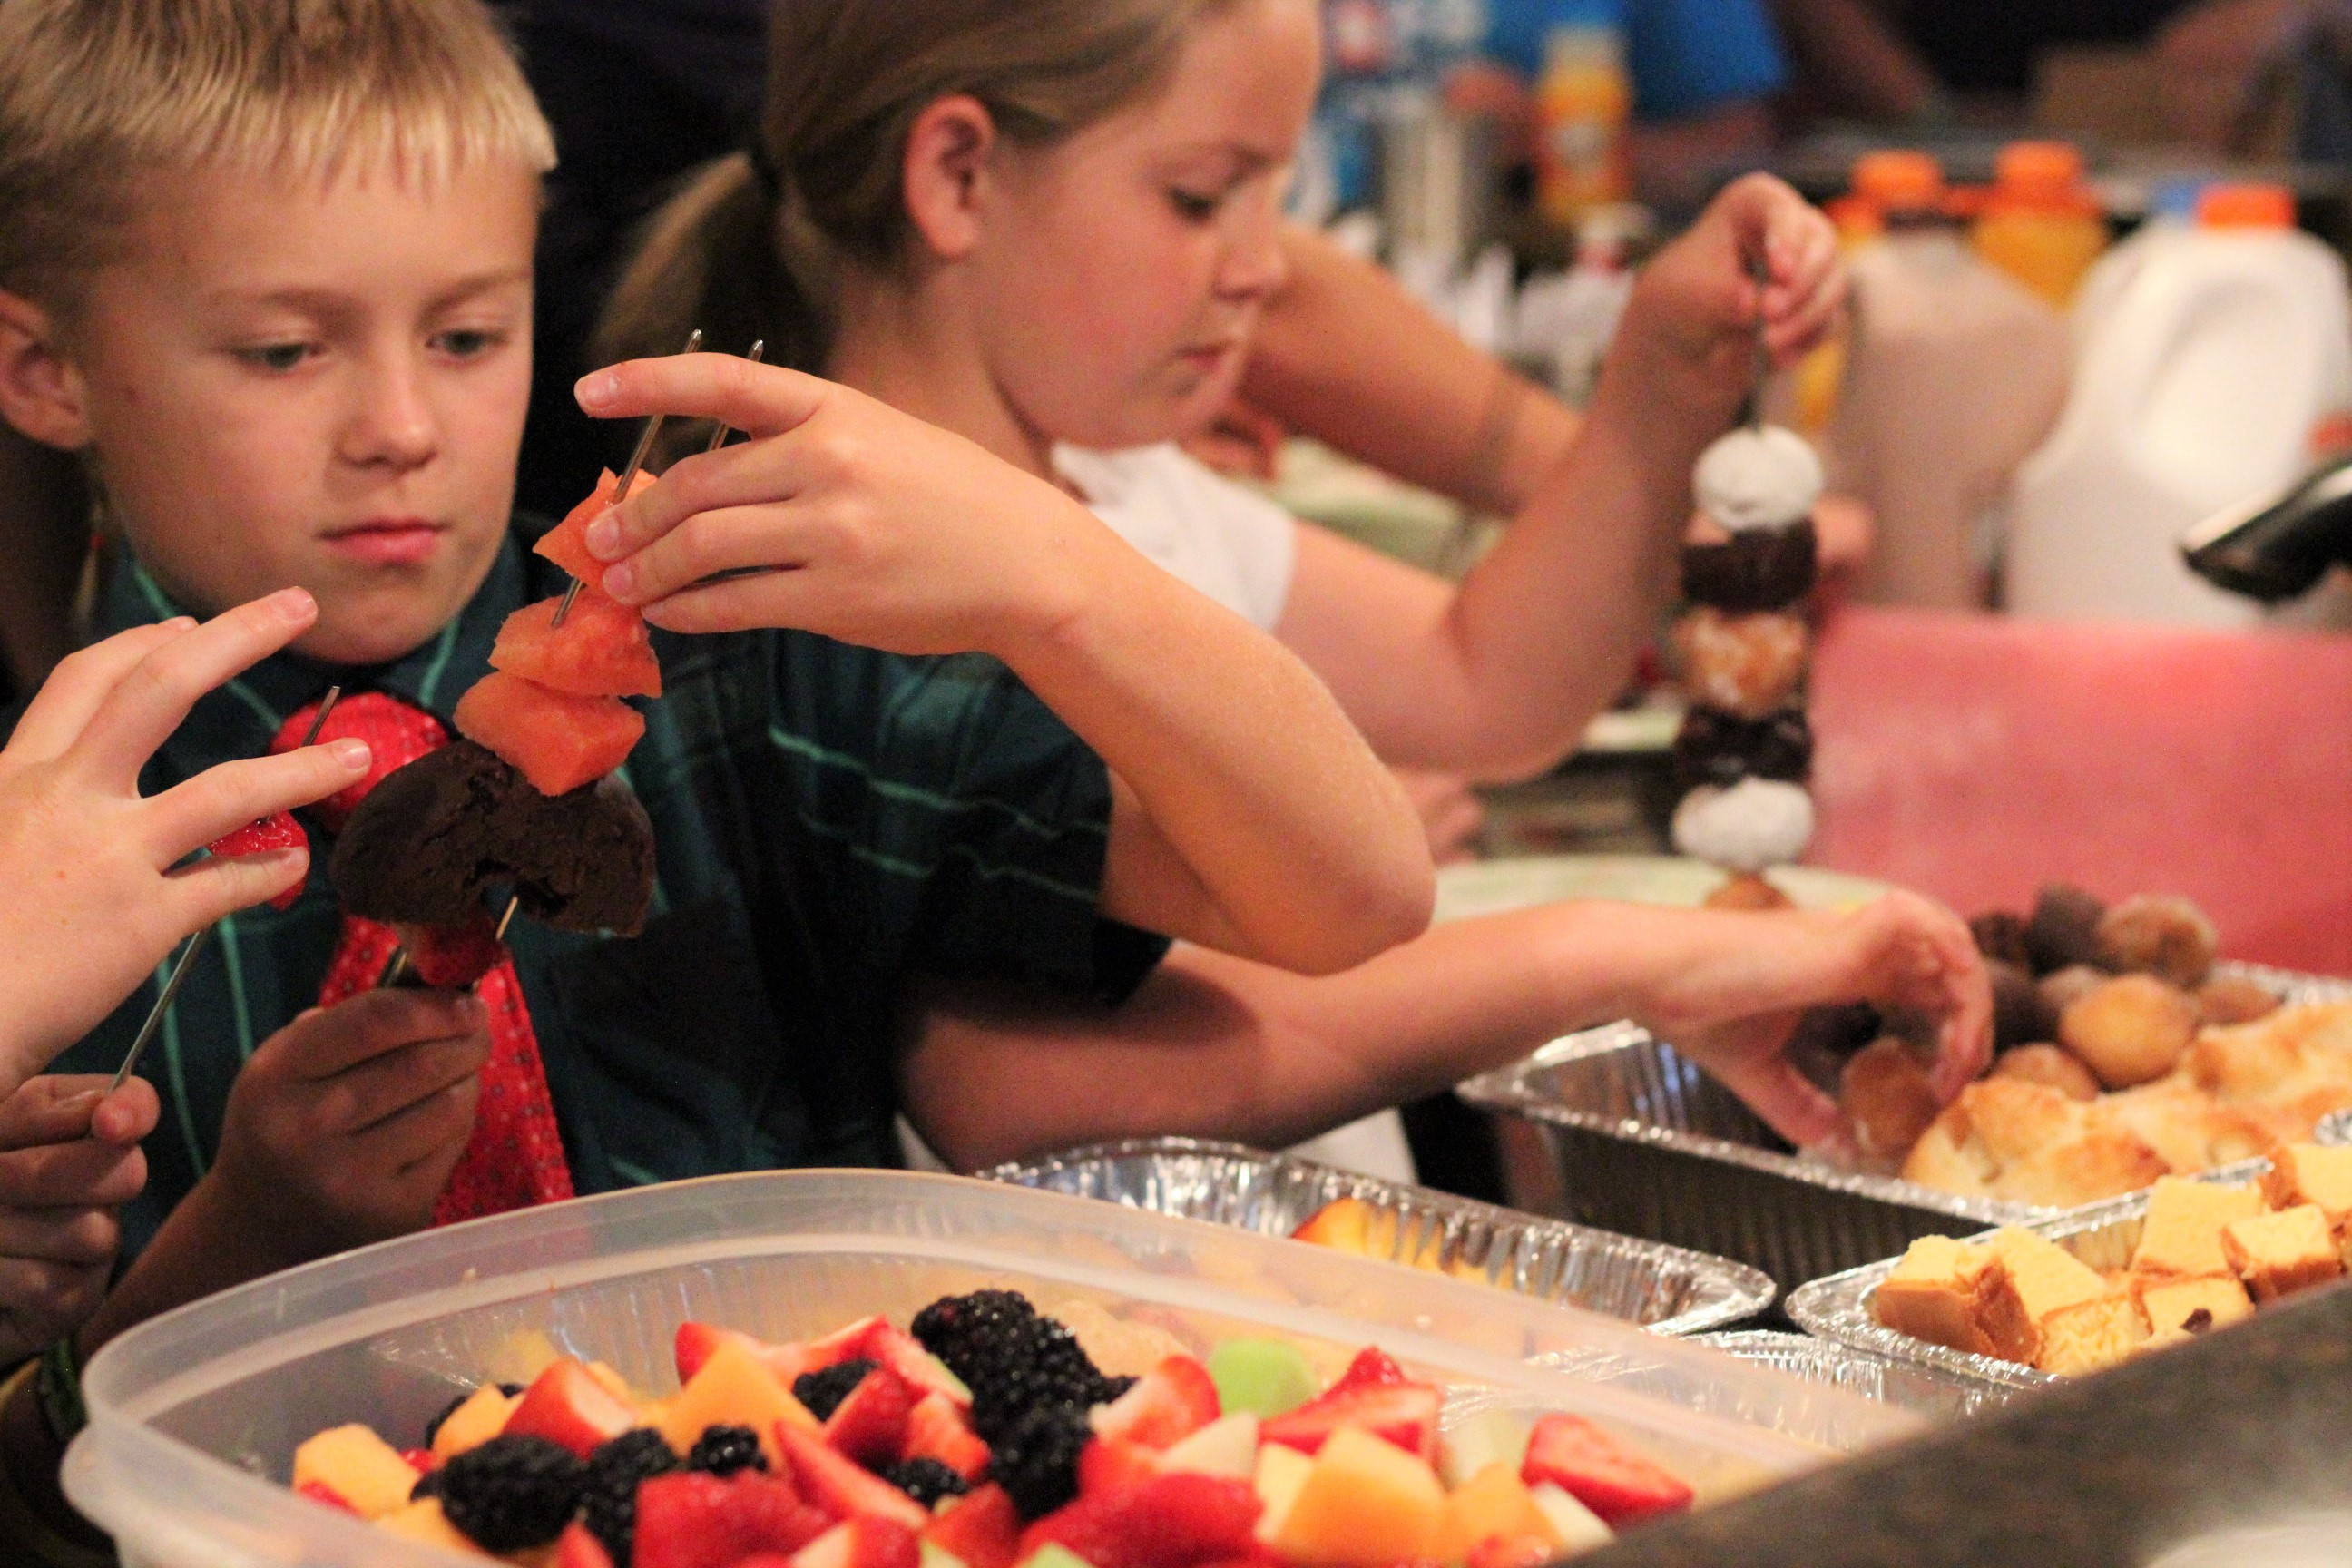 Two kids putting fruit and desserts on kebab skewers from containers full of fruit and desserts.